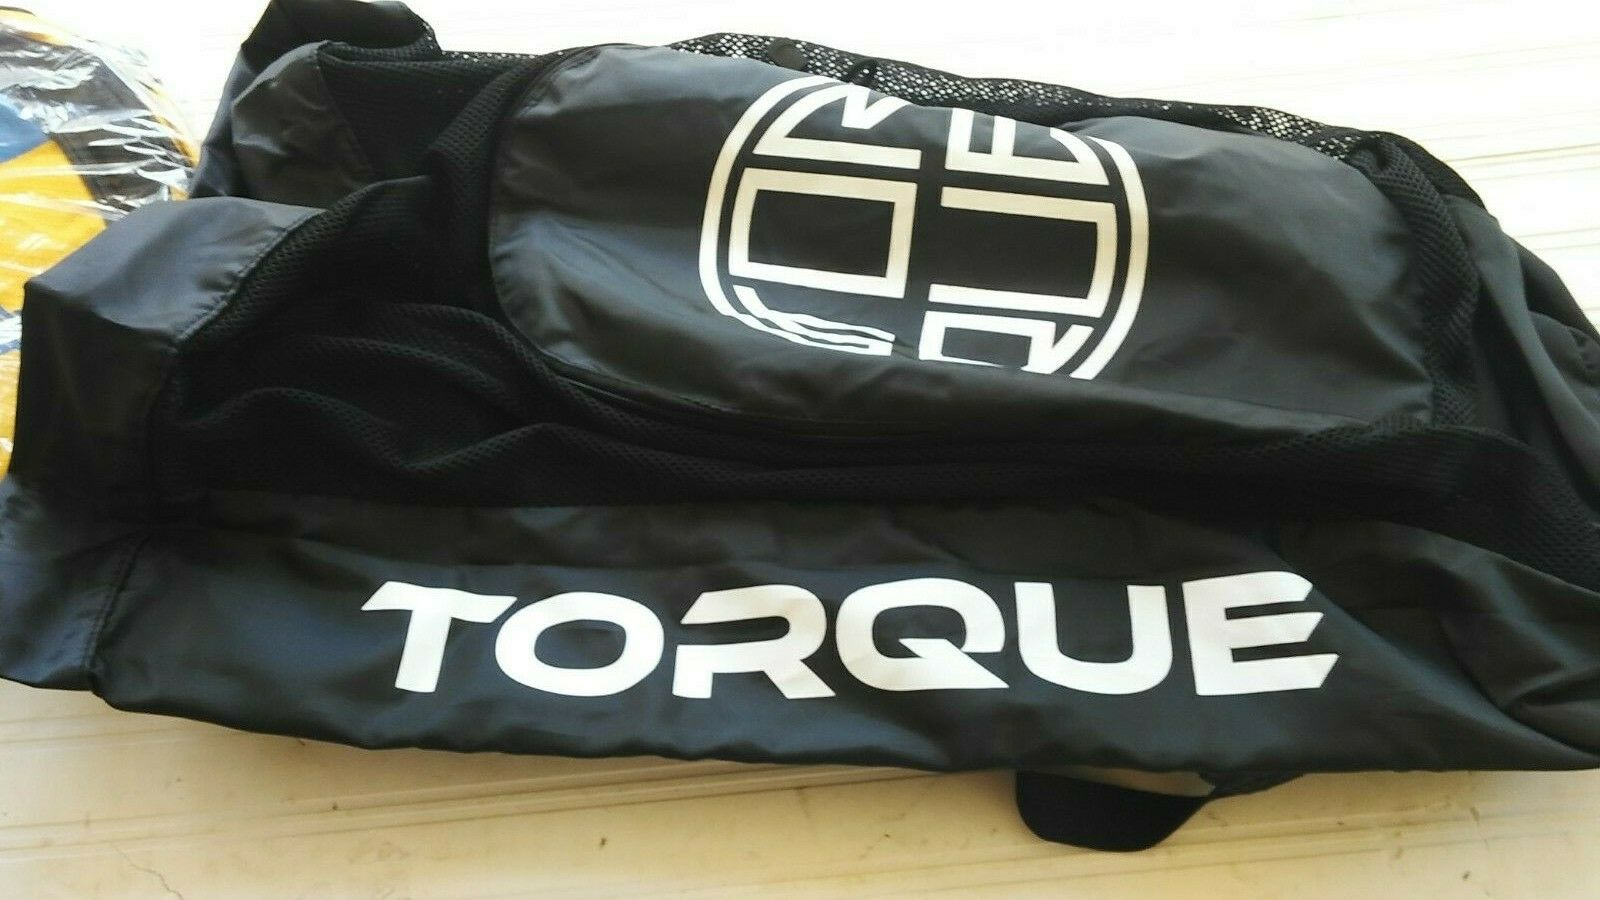 8 nuovo Adult Torque Backpacks For Hire, libros, Etc.,  24L x 15W